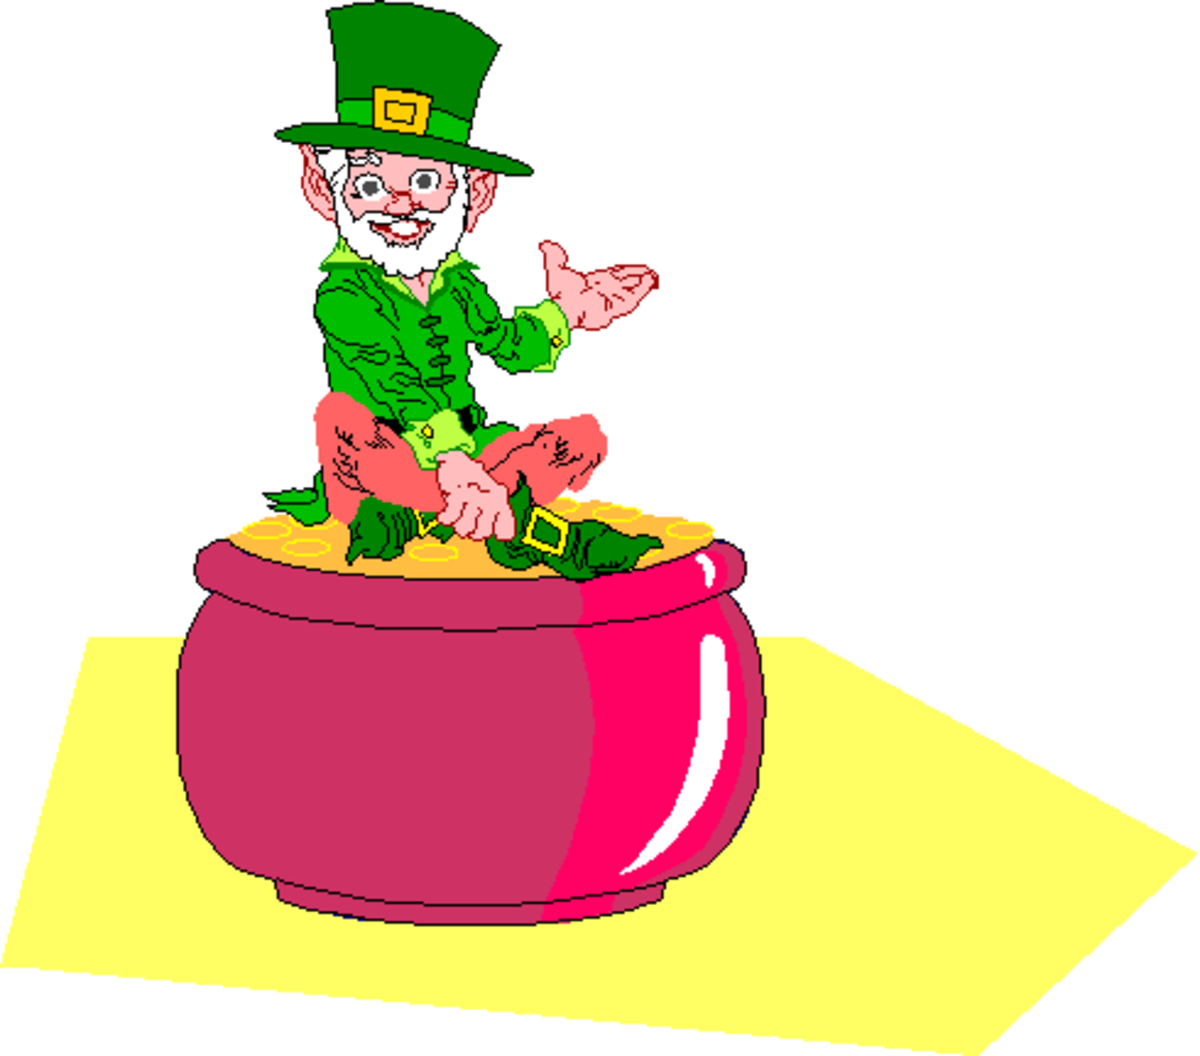 Leprechaun Sitting in Red Pot of Gold